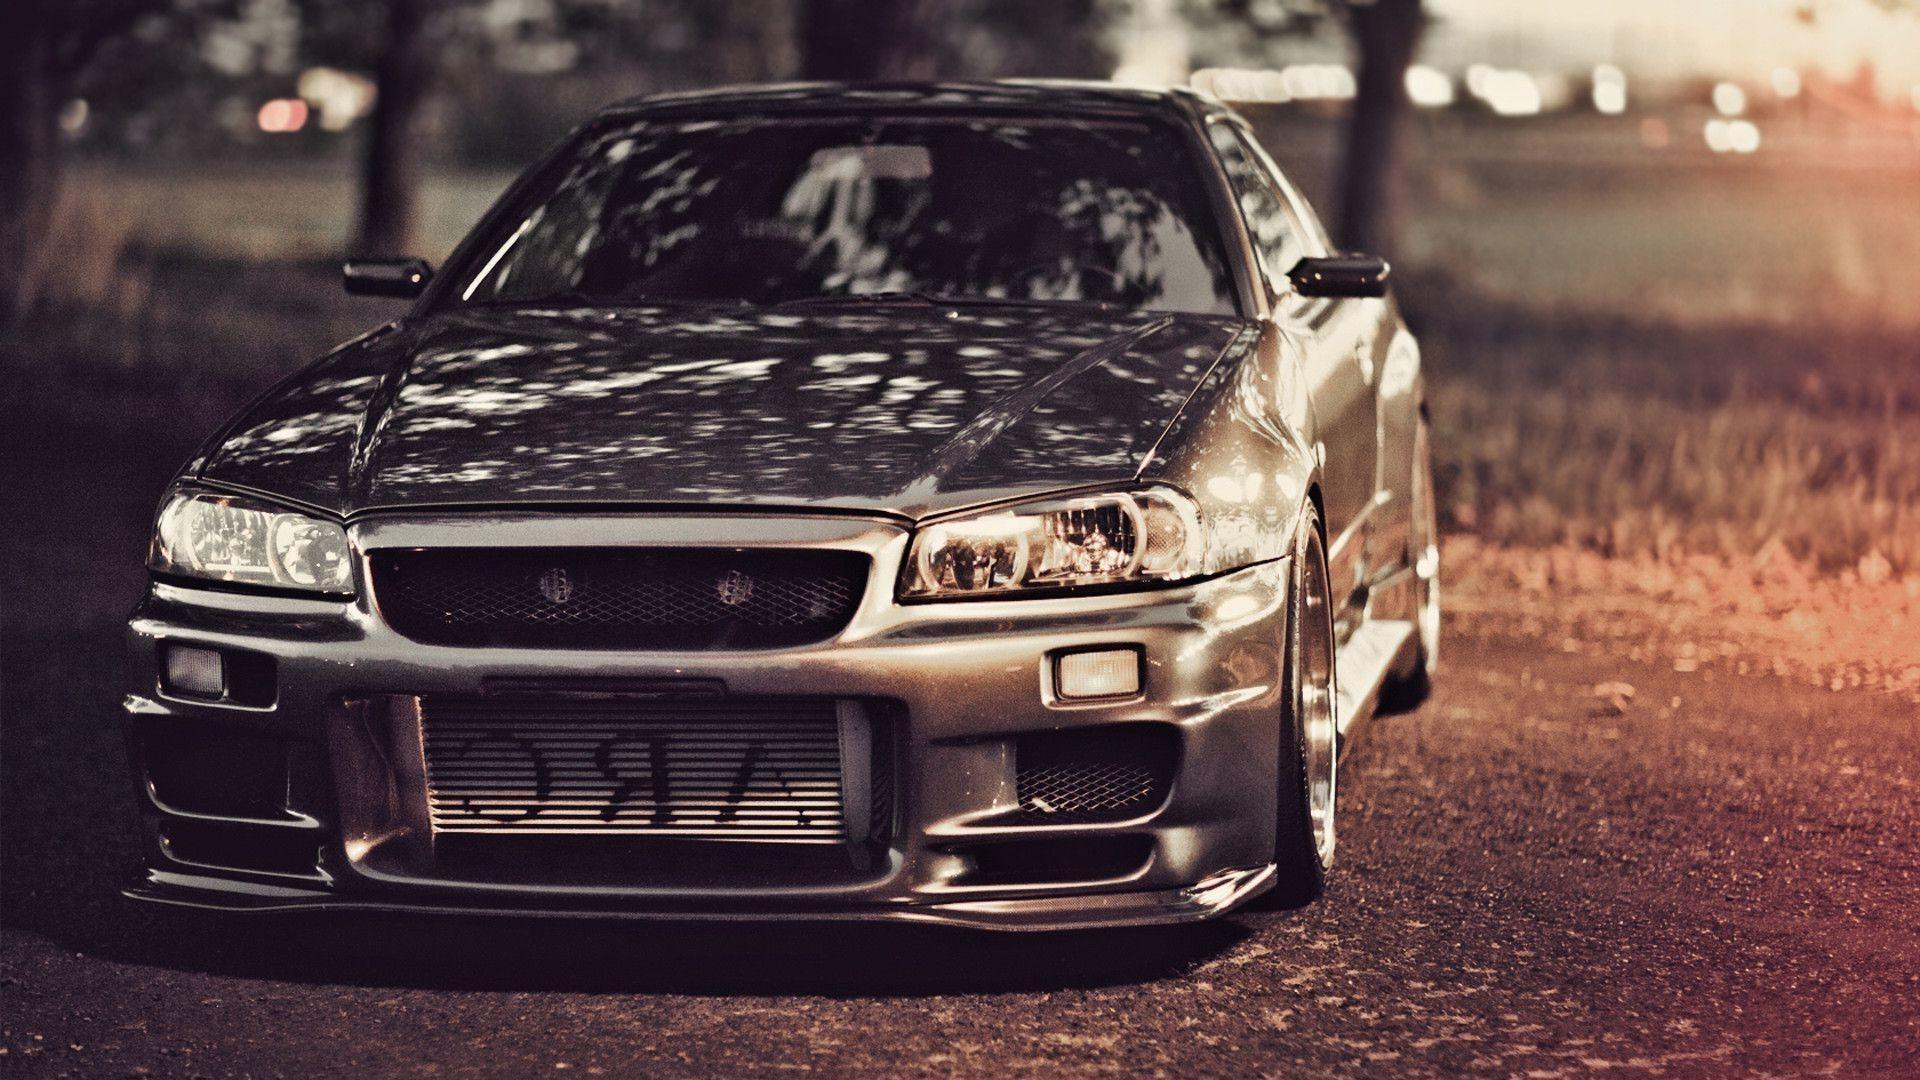 Nissan Skyline GTR R Wallpapers Group Stopimage 1920×1080 R34